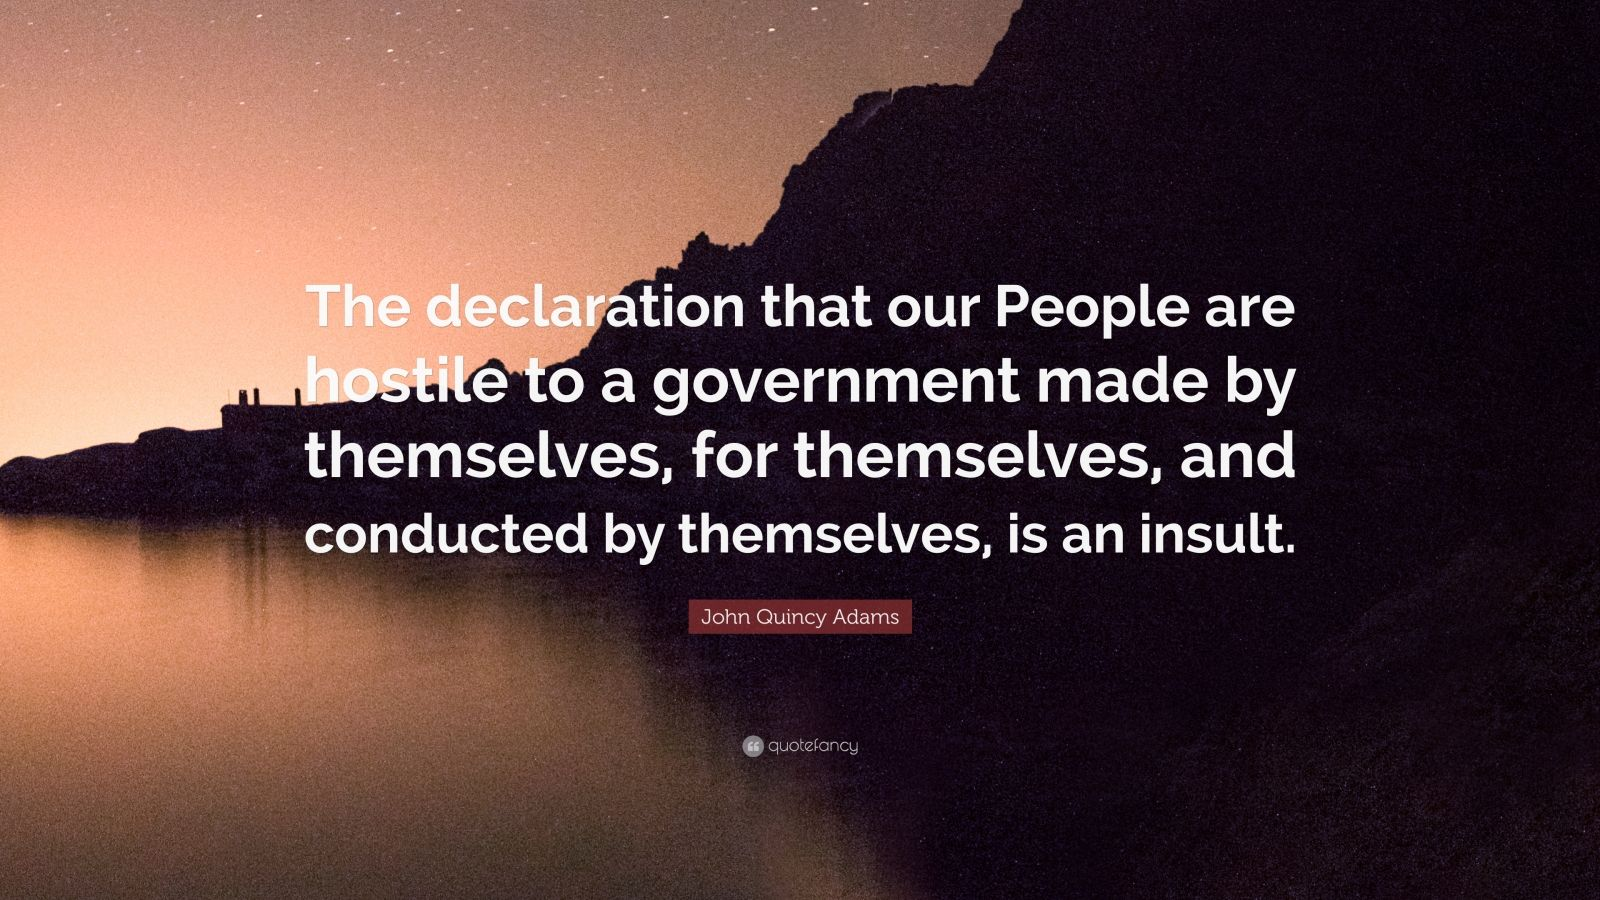 """John Quincy Adams Quote: """"The declaration that our People are hostile to a government made by themselves, for themselves, and conducted by themselves, is an insult."""""""